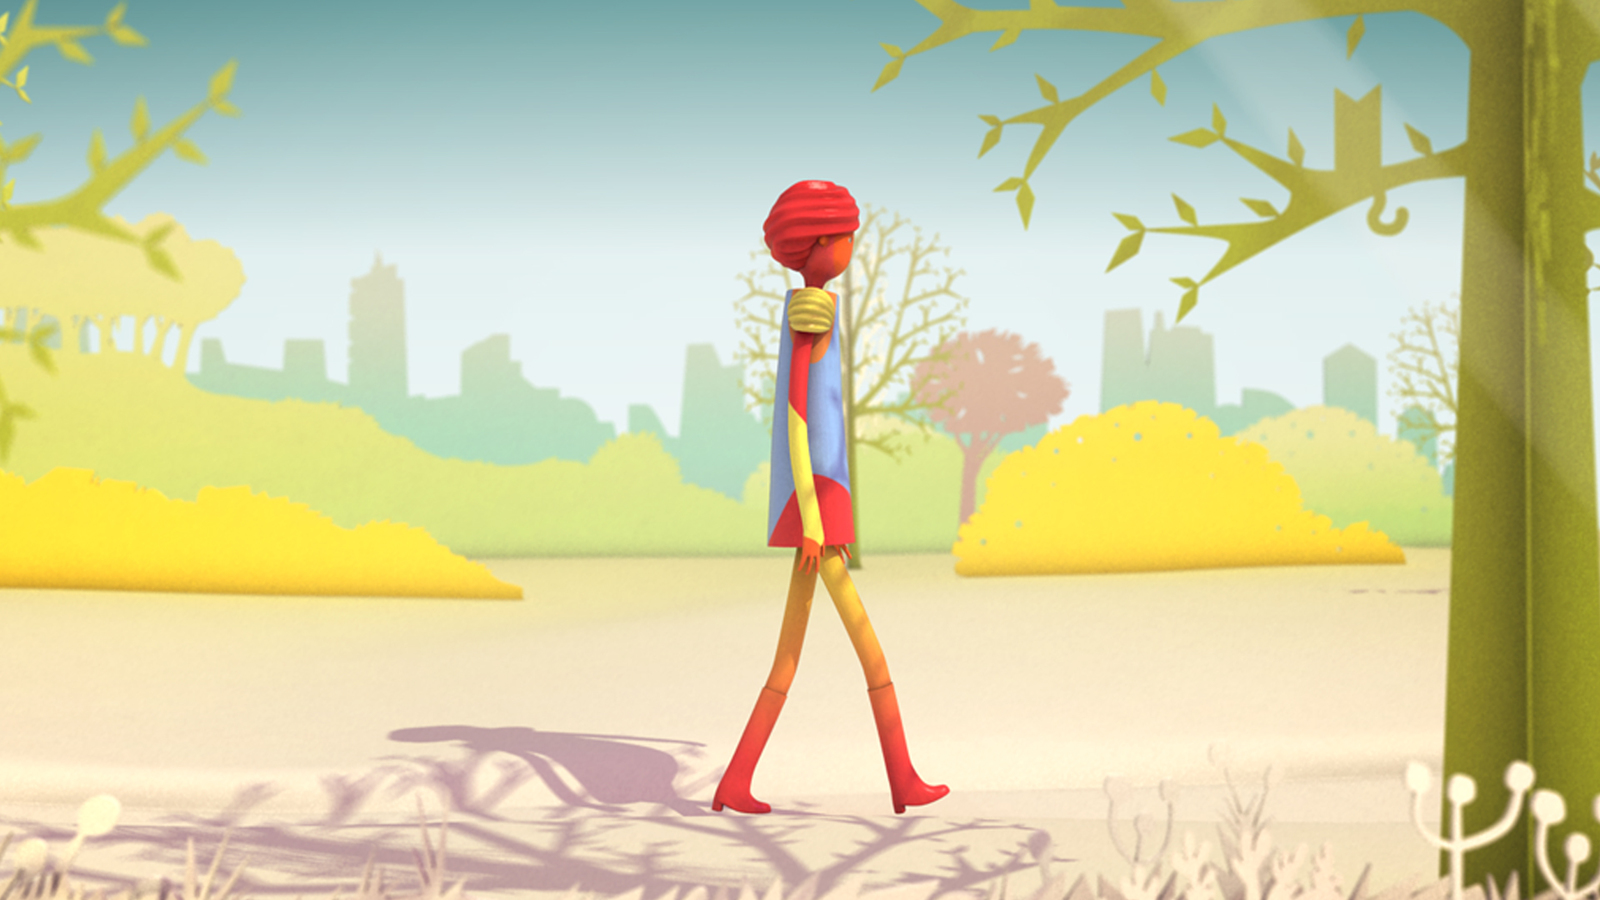 Frame from animation of character walking in park